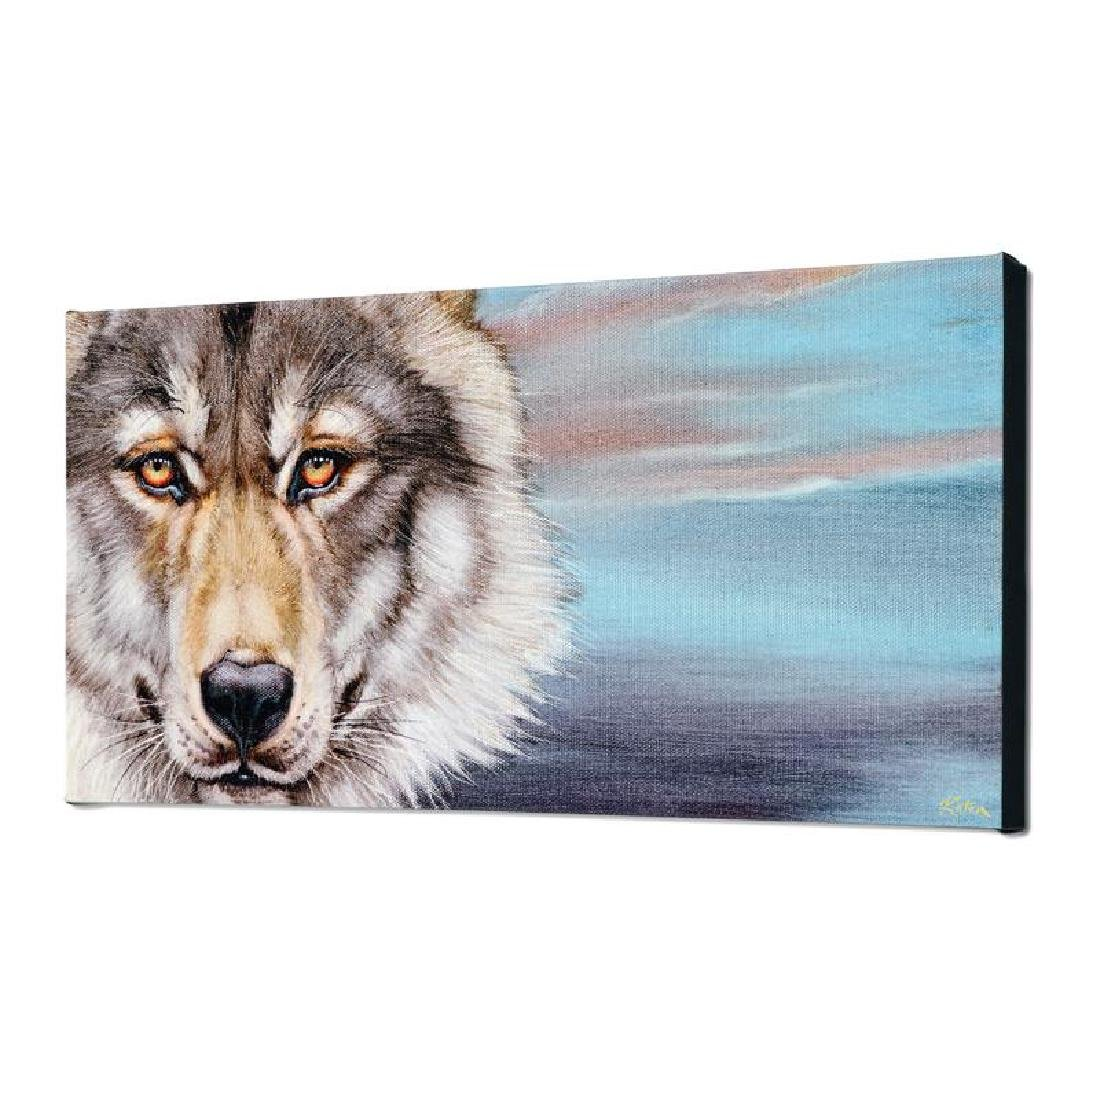 """Wolf"" Limited Edition Giclee on Canvas by Martin"